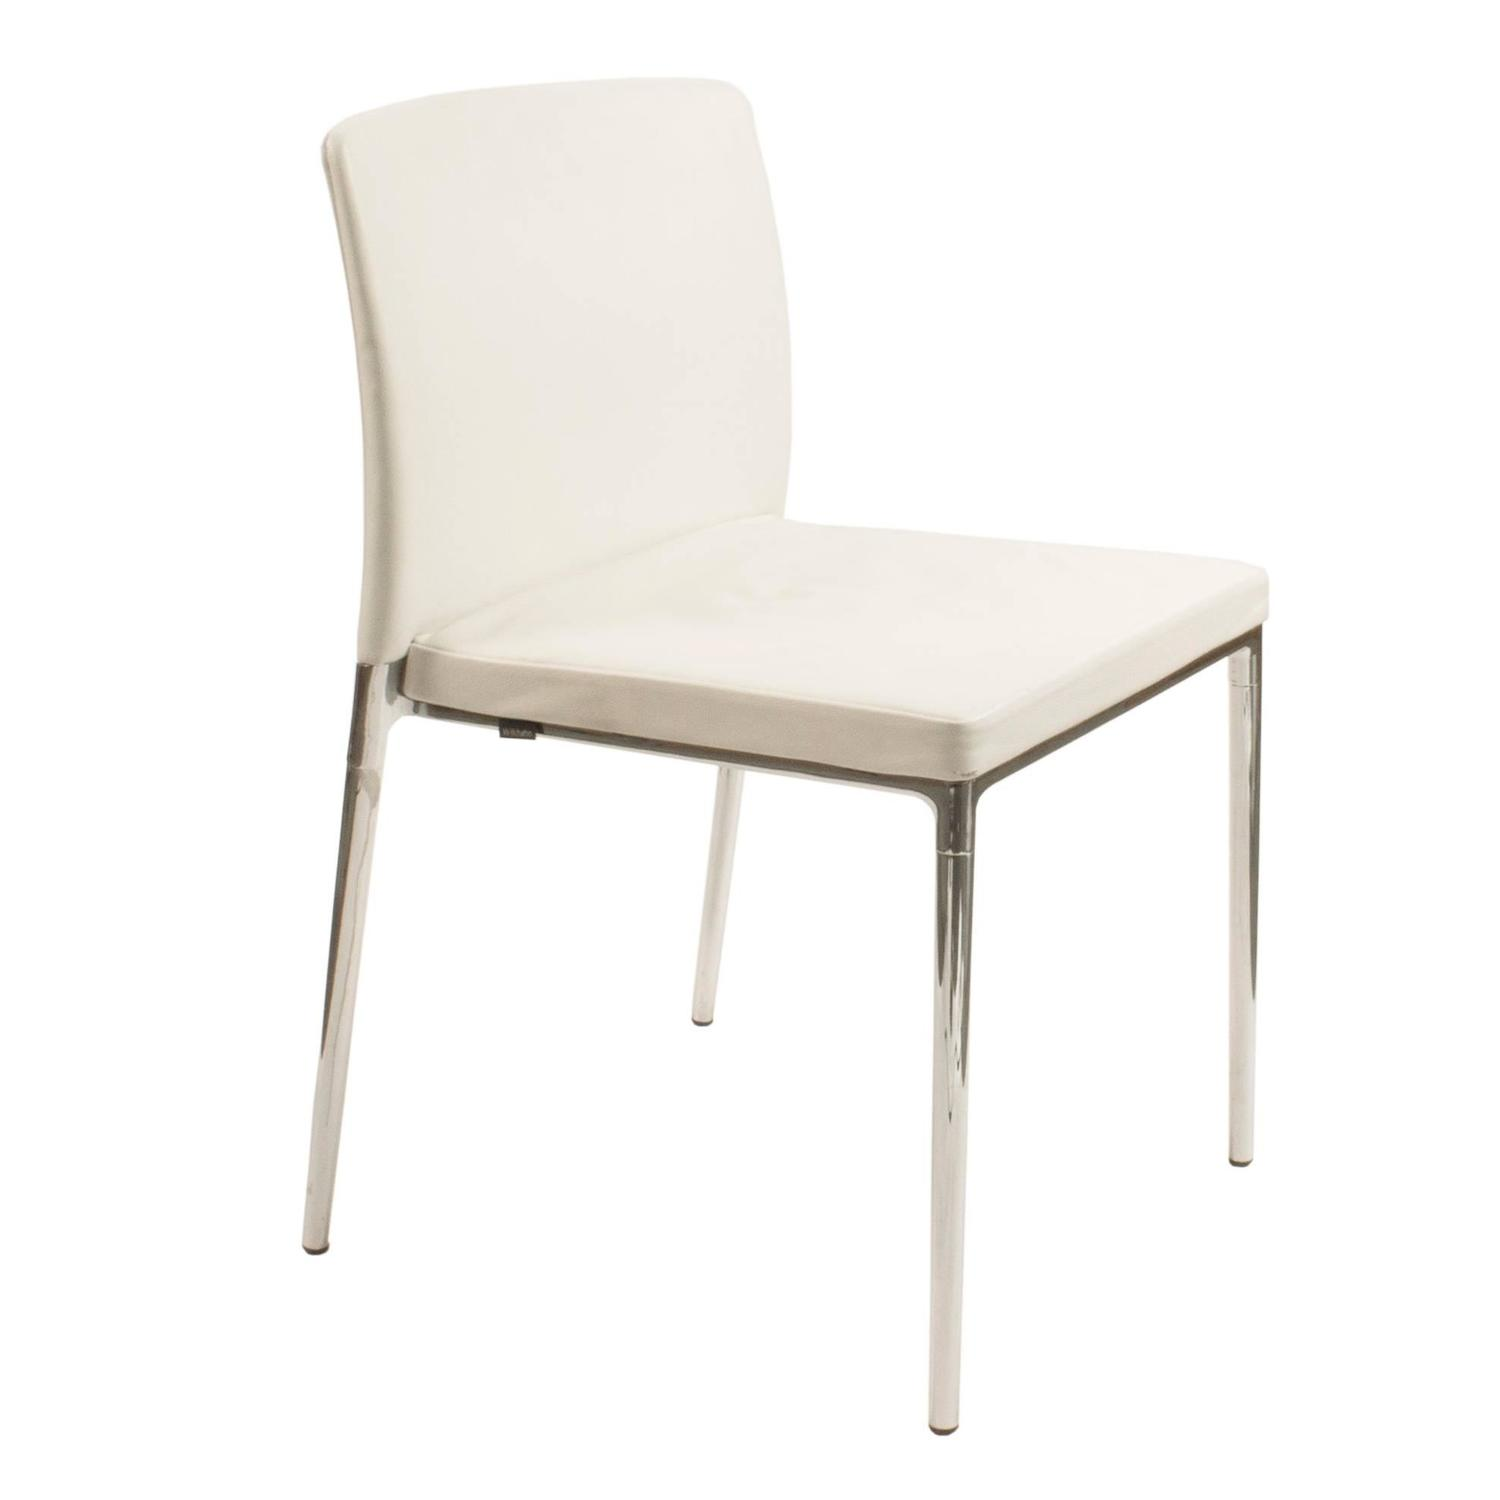 white leather chairs for sale safety first high chair seat wilkhahn ceno stackable conference side